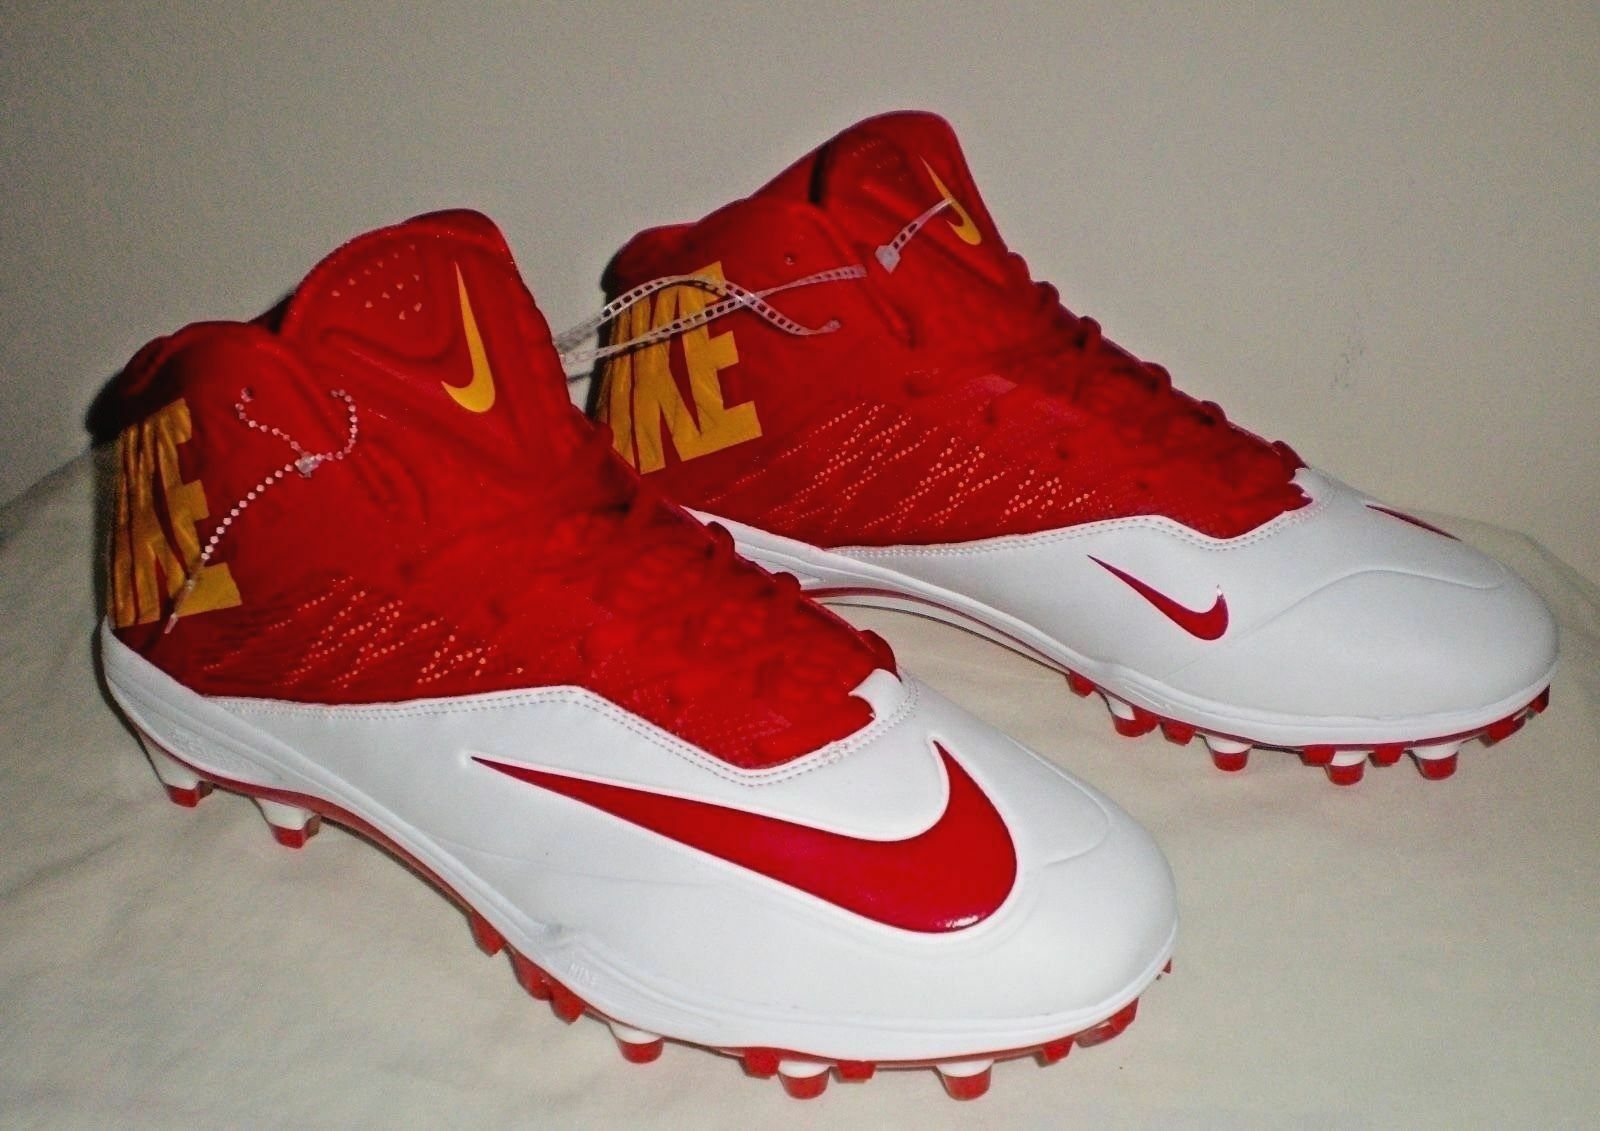 a028bdac9c2 NIKE Zoom Code Elite 3 4 Molded Football Cleats Mens RED WHITE YELLOW gold  Sz 13